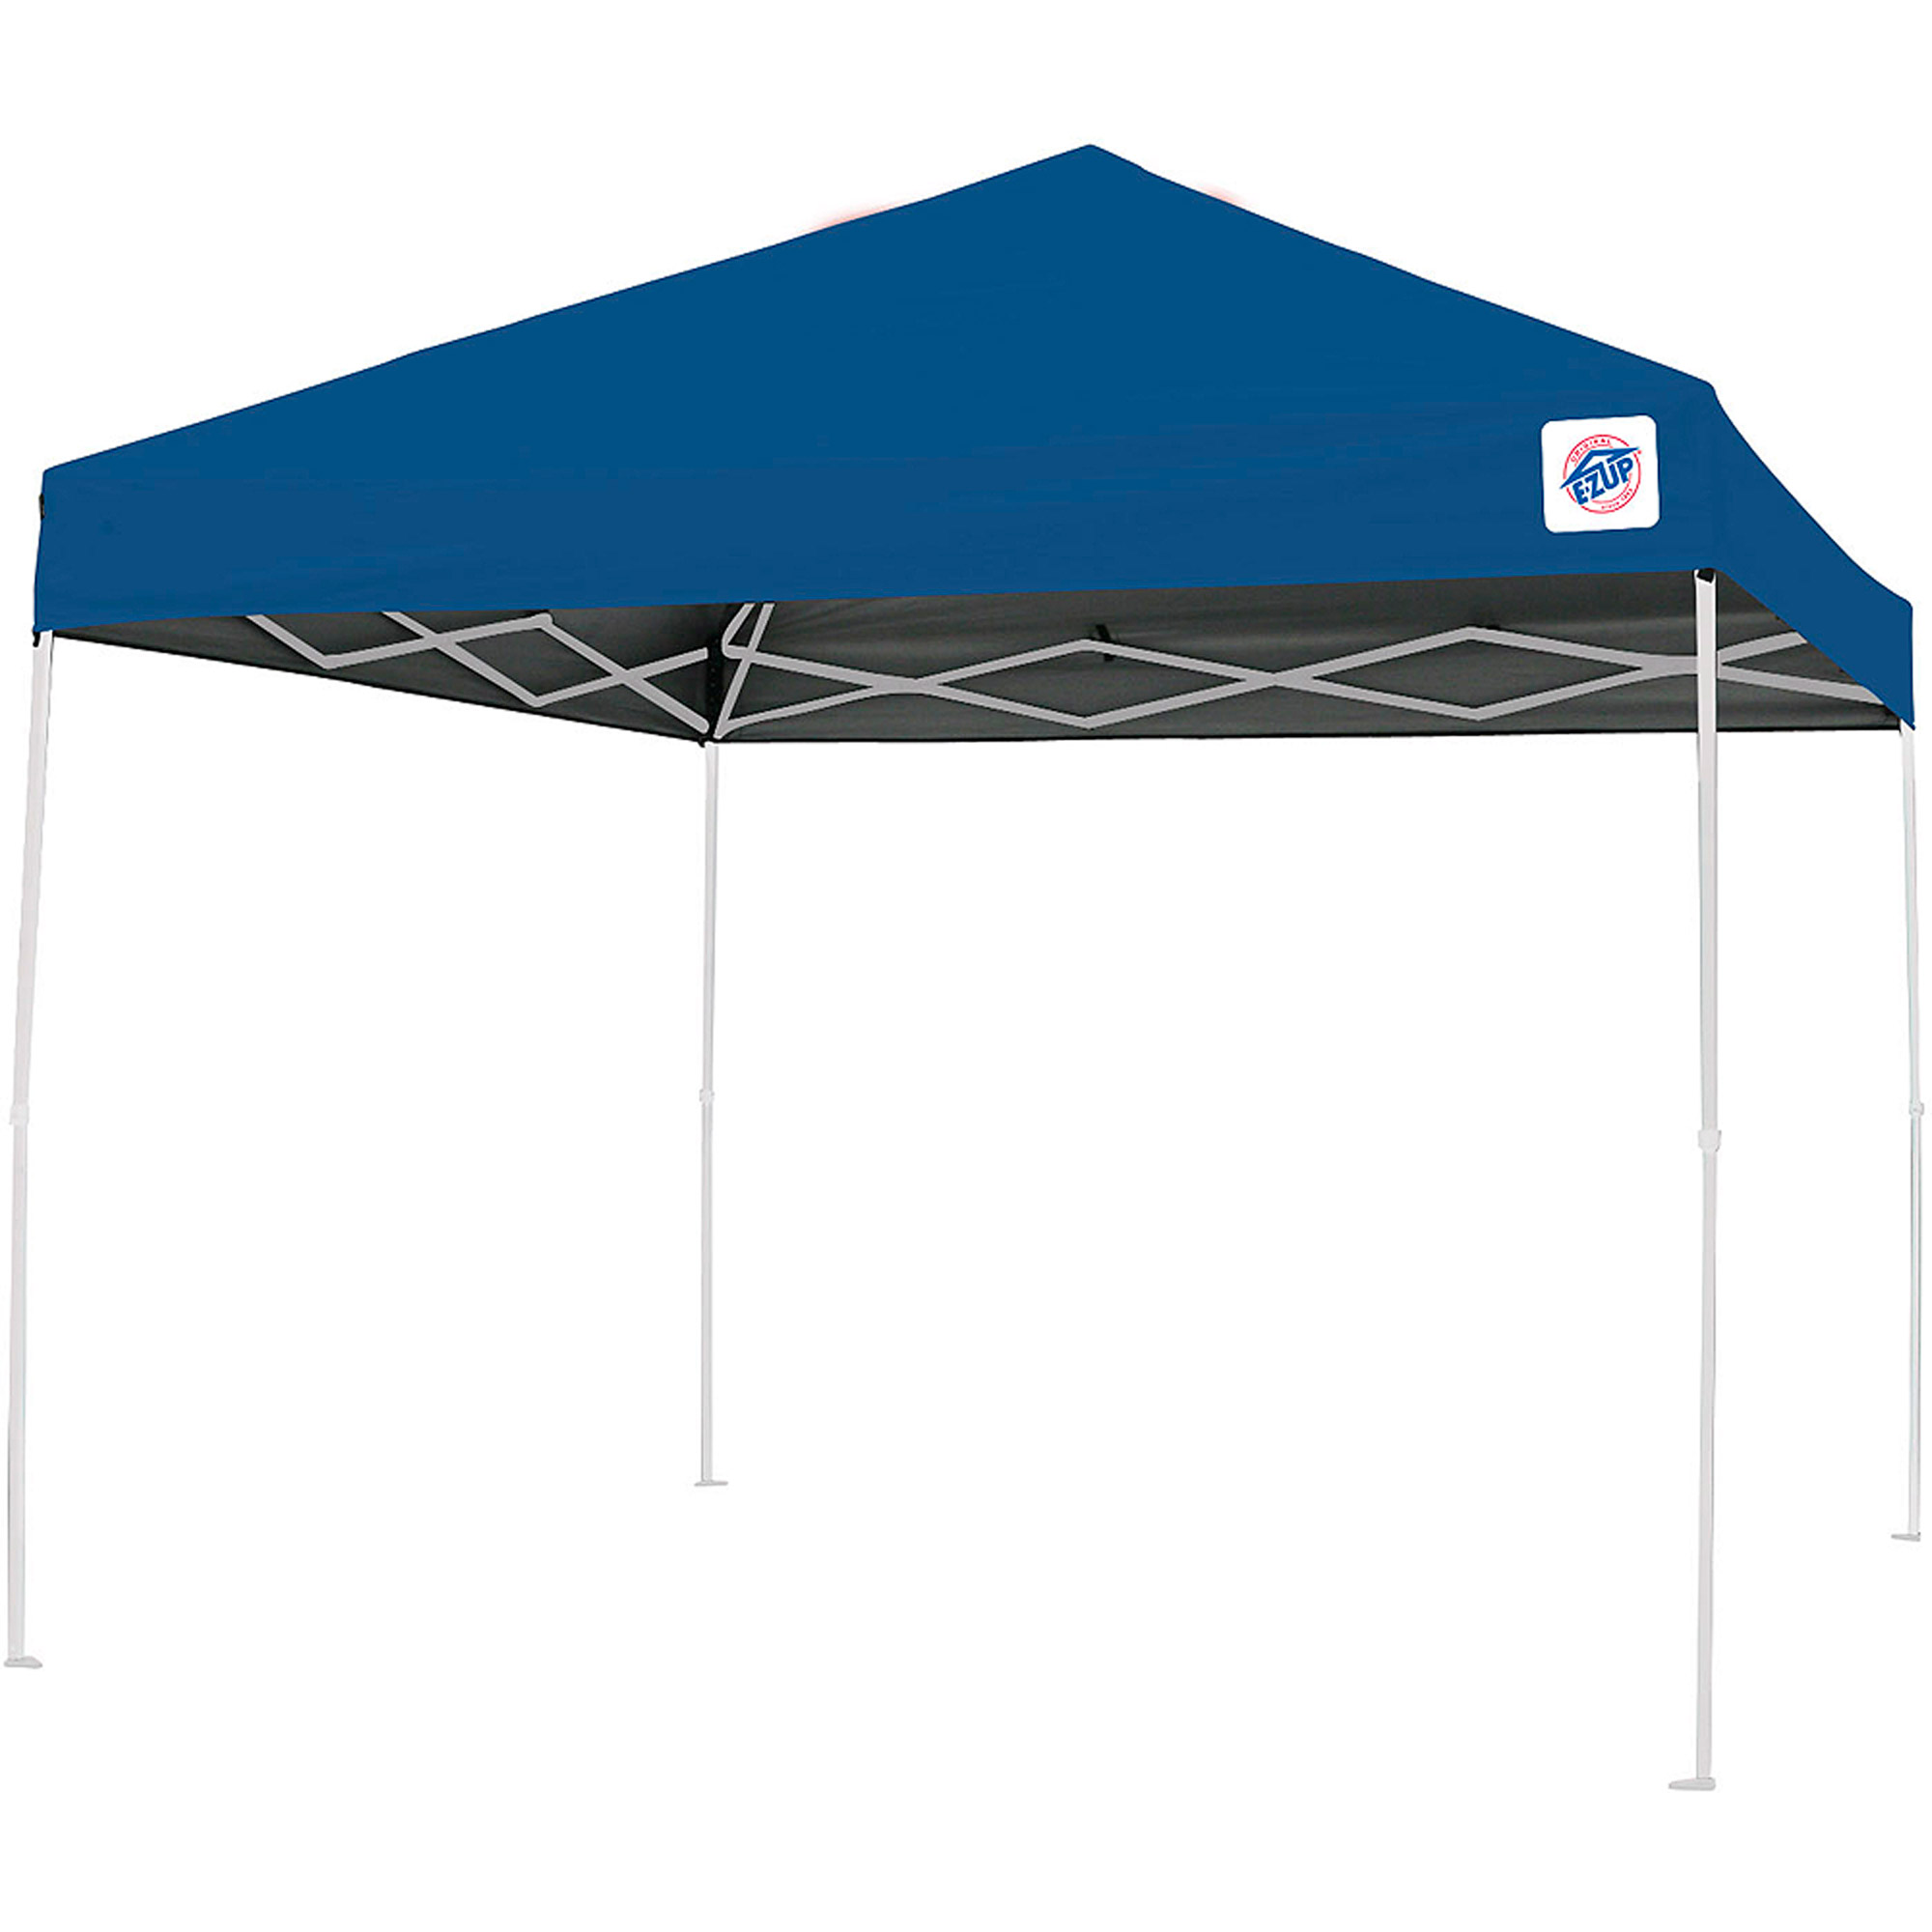 E-Z Up Envoy 10u0027x10u0027 Straight Leg Instant Canopy (100 sq. ft. coverage) - Walmart.com  sc 1 st  Walmart : oztrail gazebo tent attachment - memphite.com